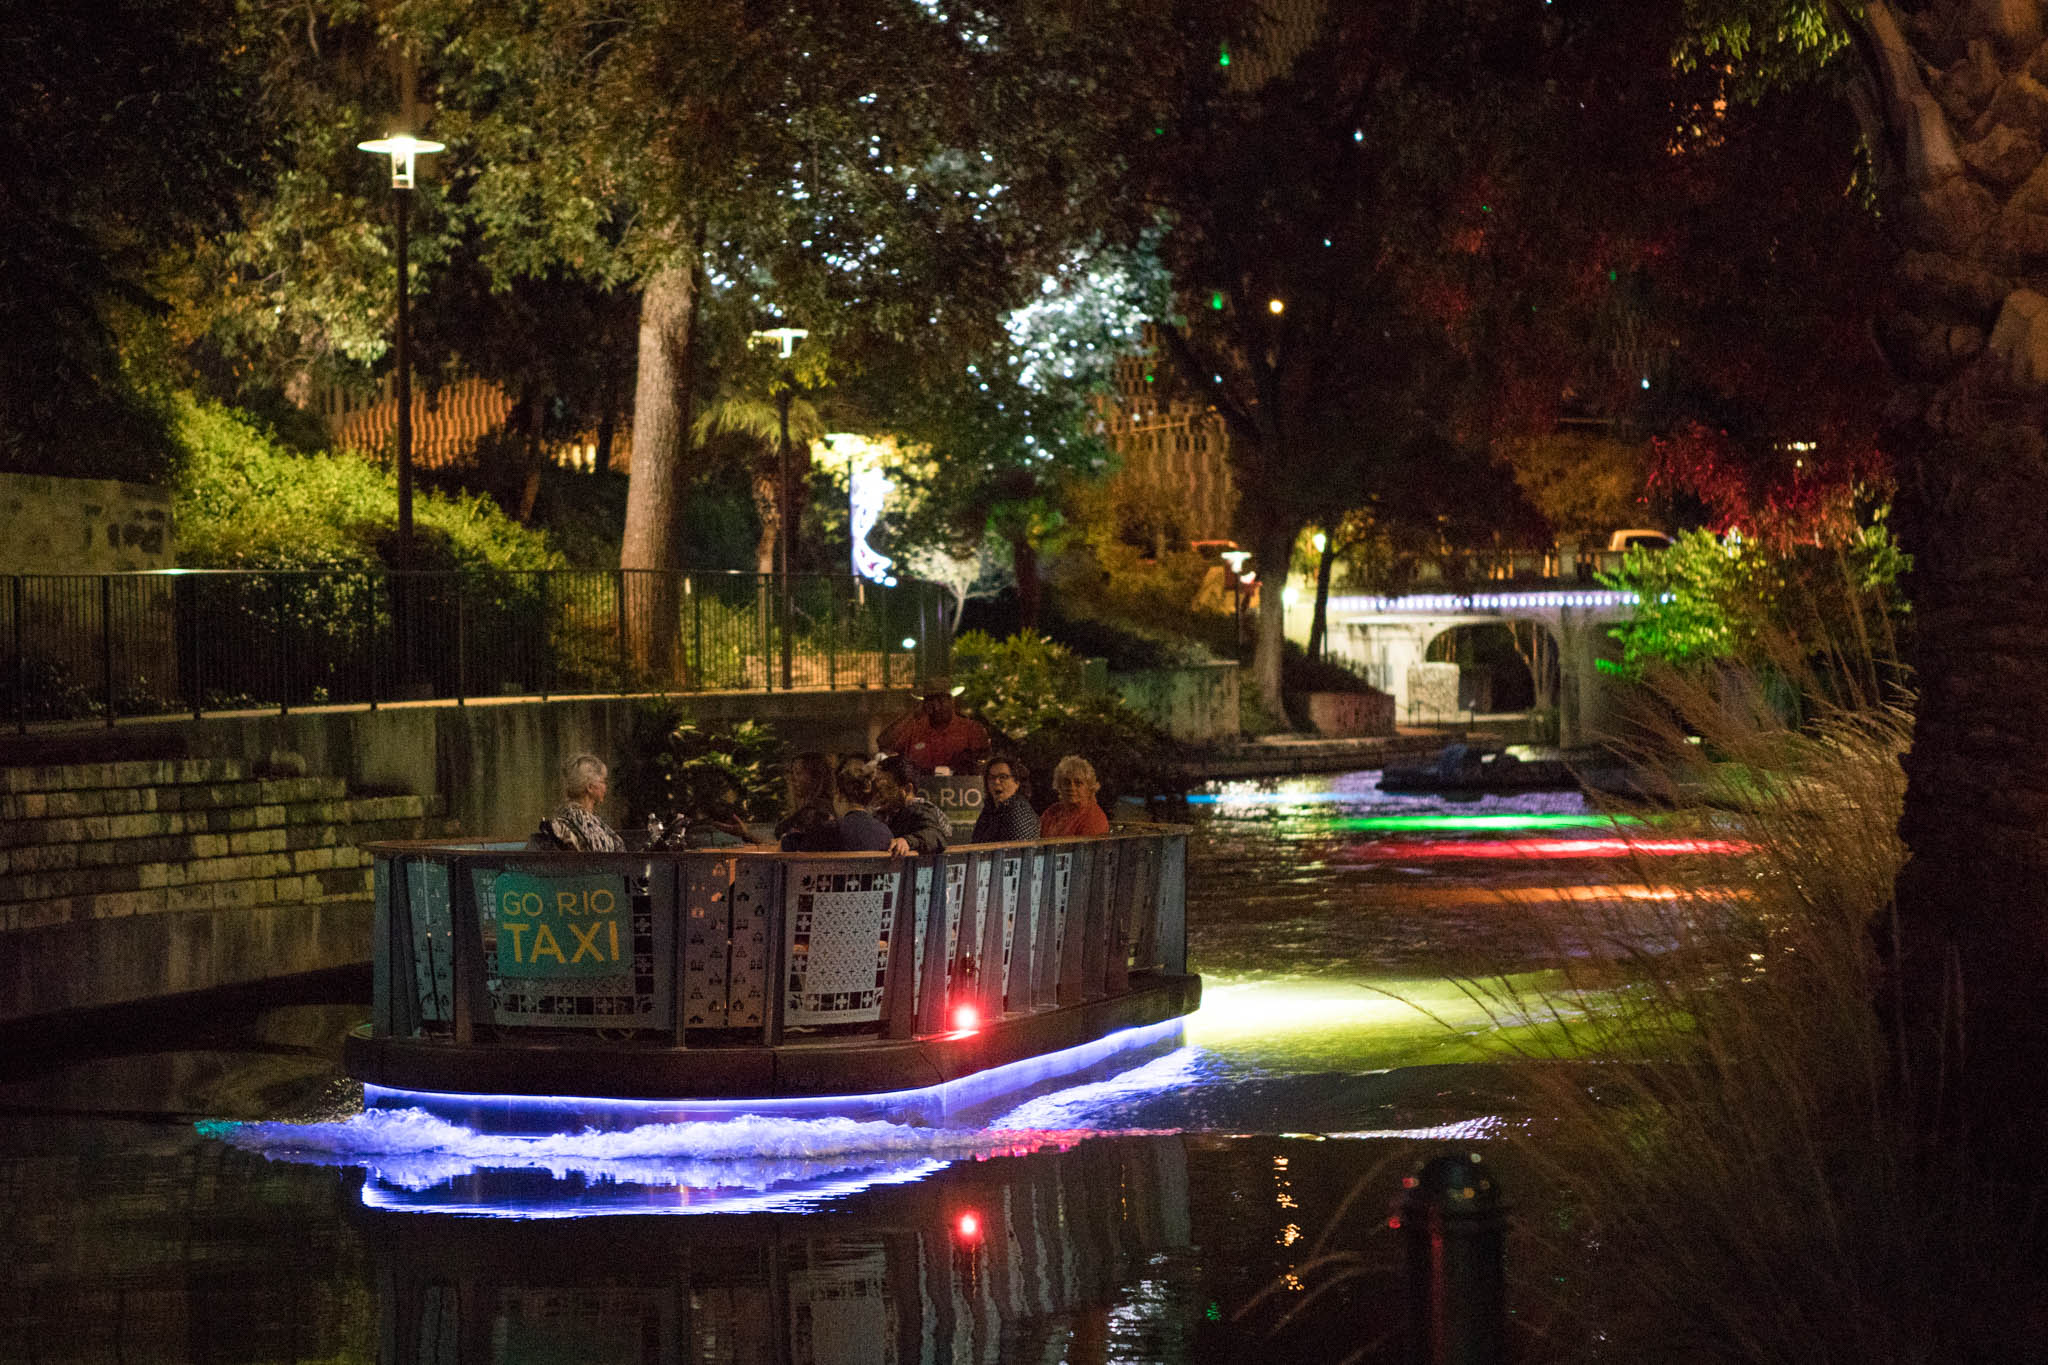 A new San Antonio River Barge passes over the holiday-covered spotlights along Museum Reach.